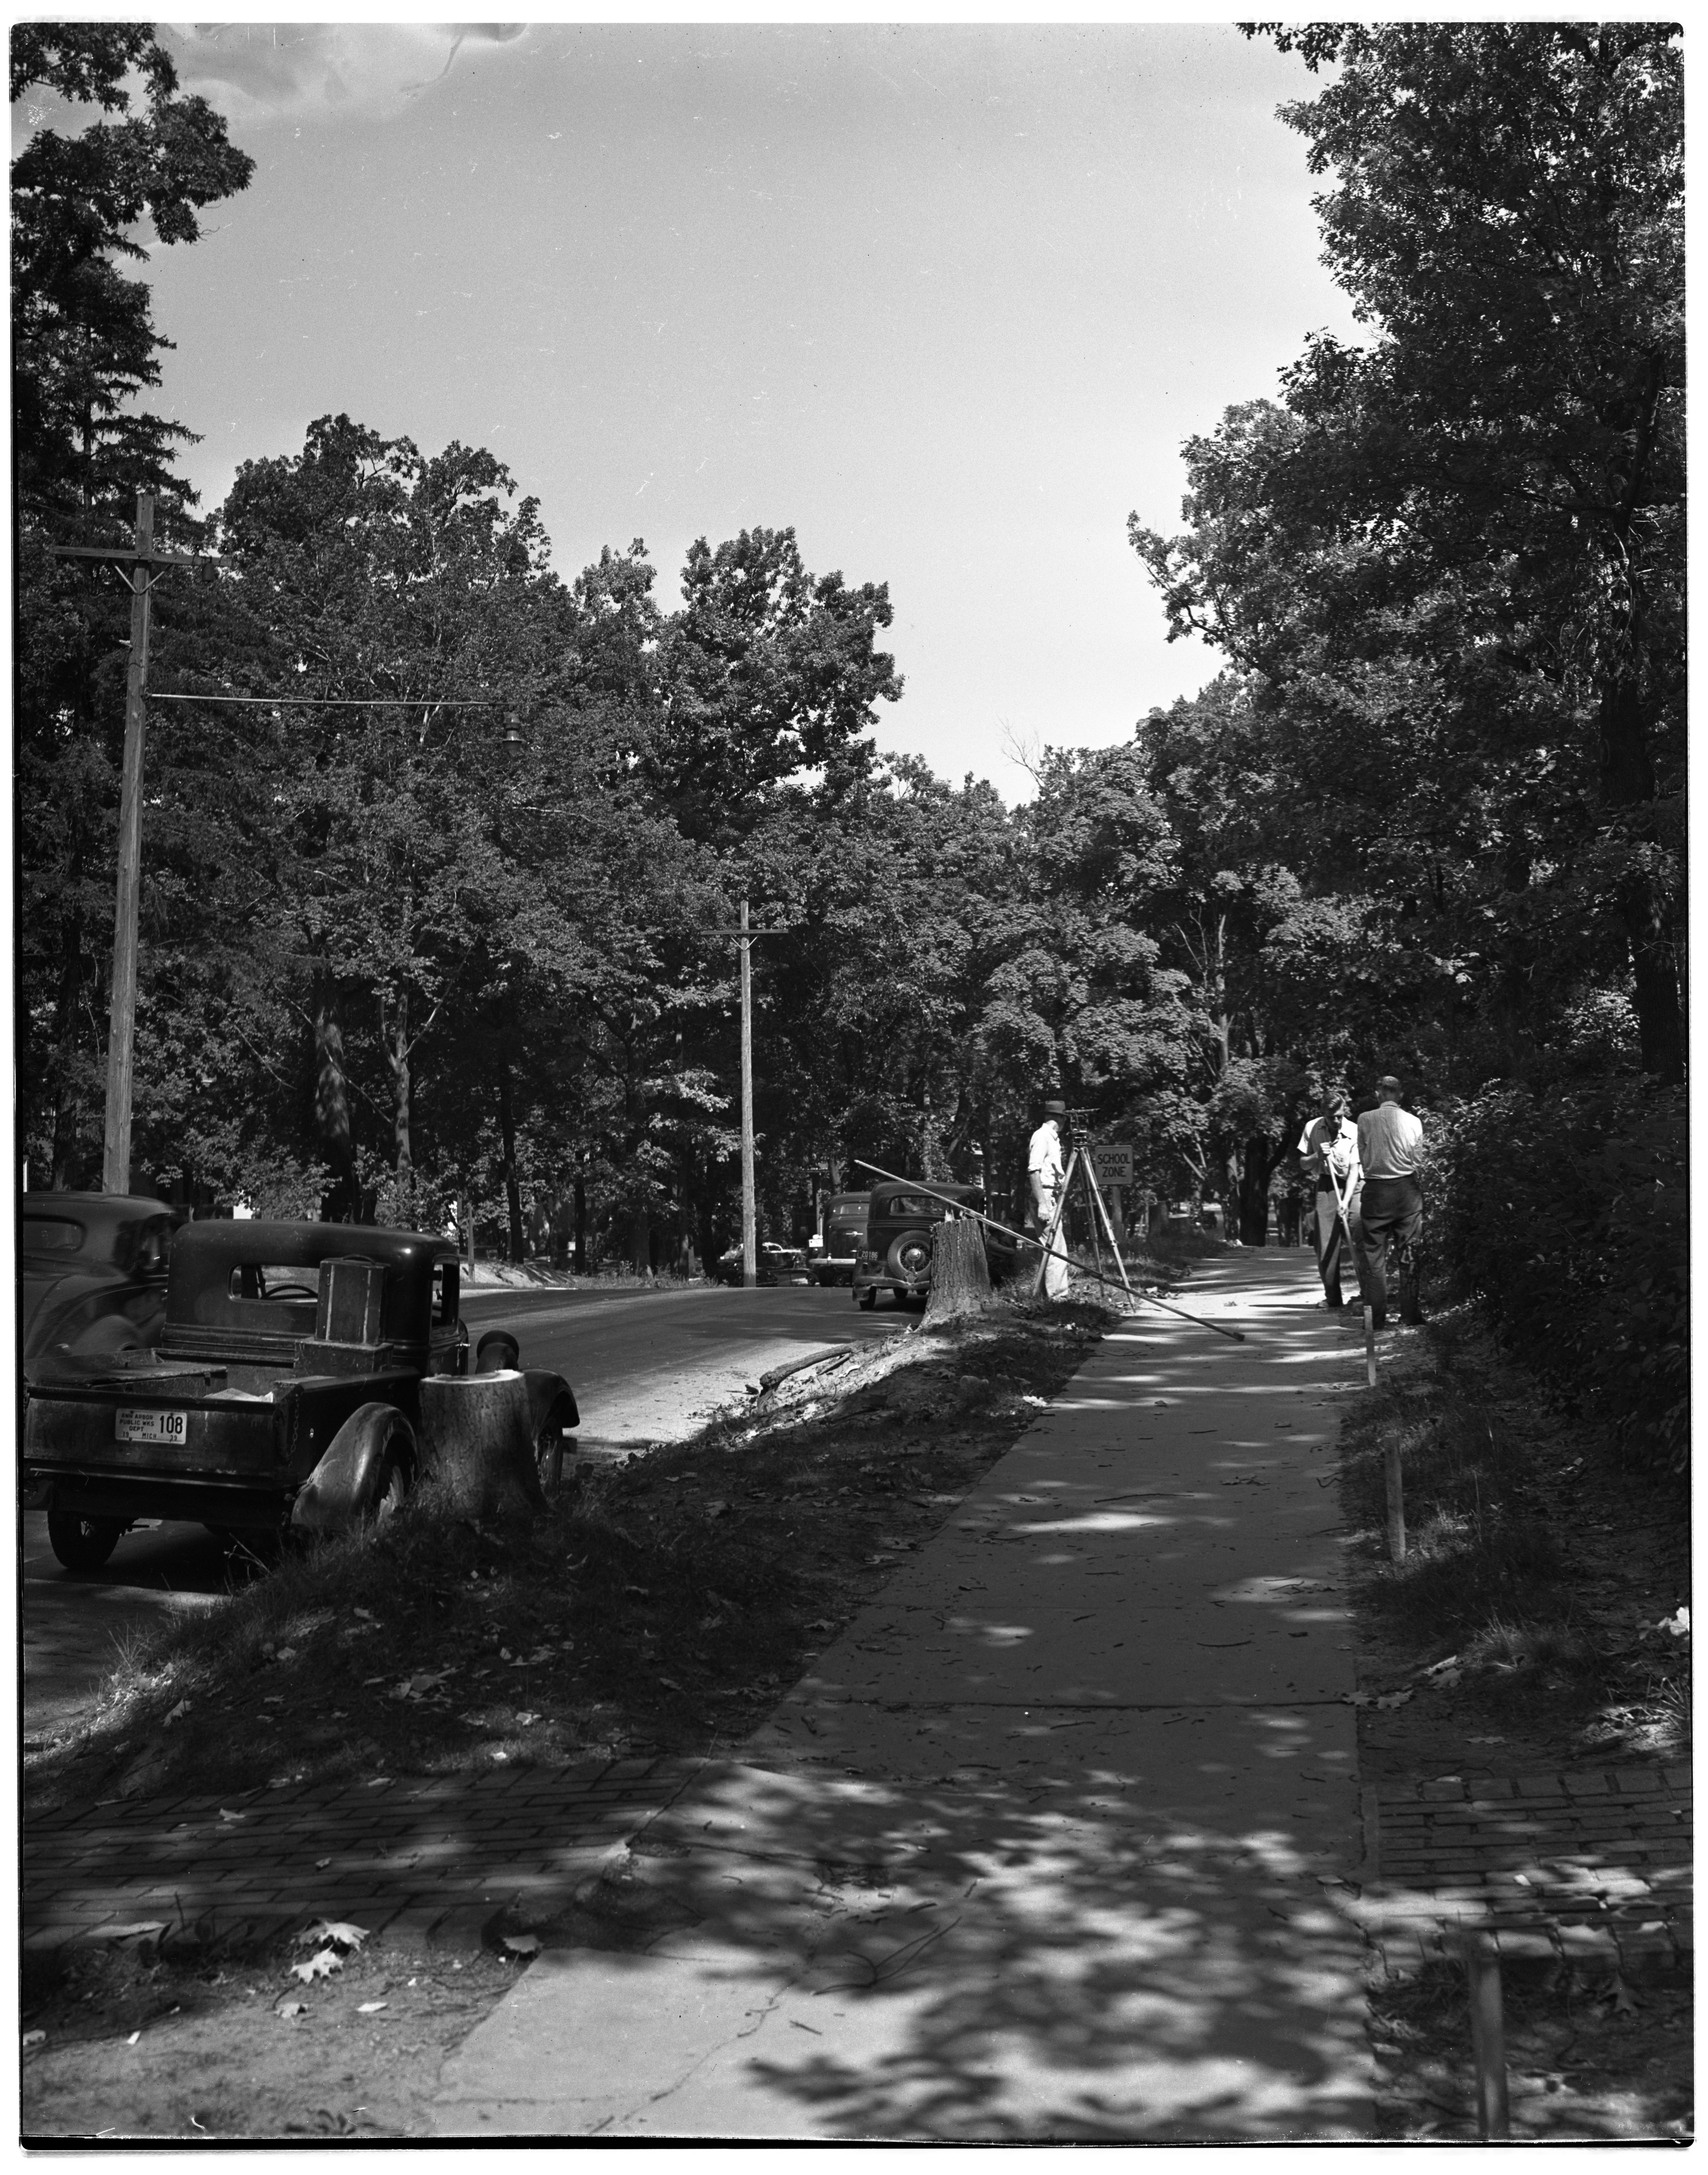 Tree Cutting on Washtenaw Ave. image